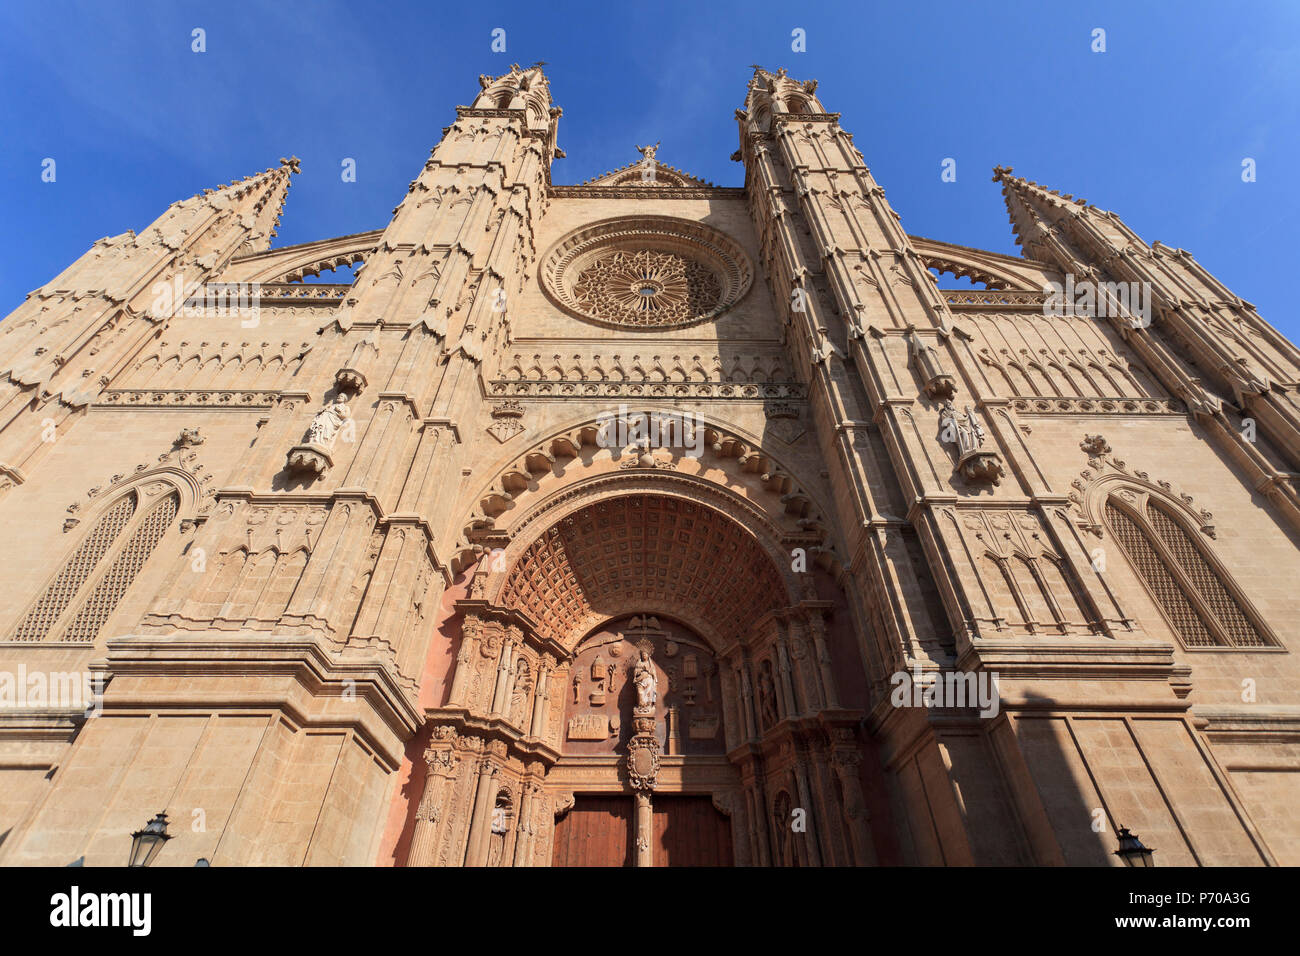 Spain, Balearic Islands, Mallorca, Palma de Mallorca, Cathedral (La Seu) - Stock Image